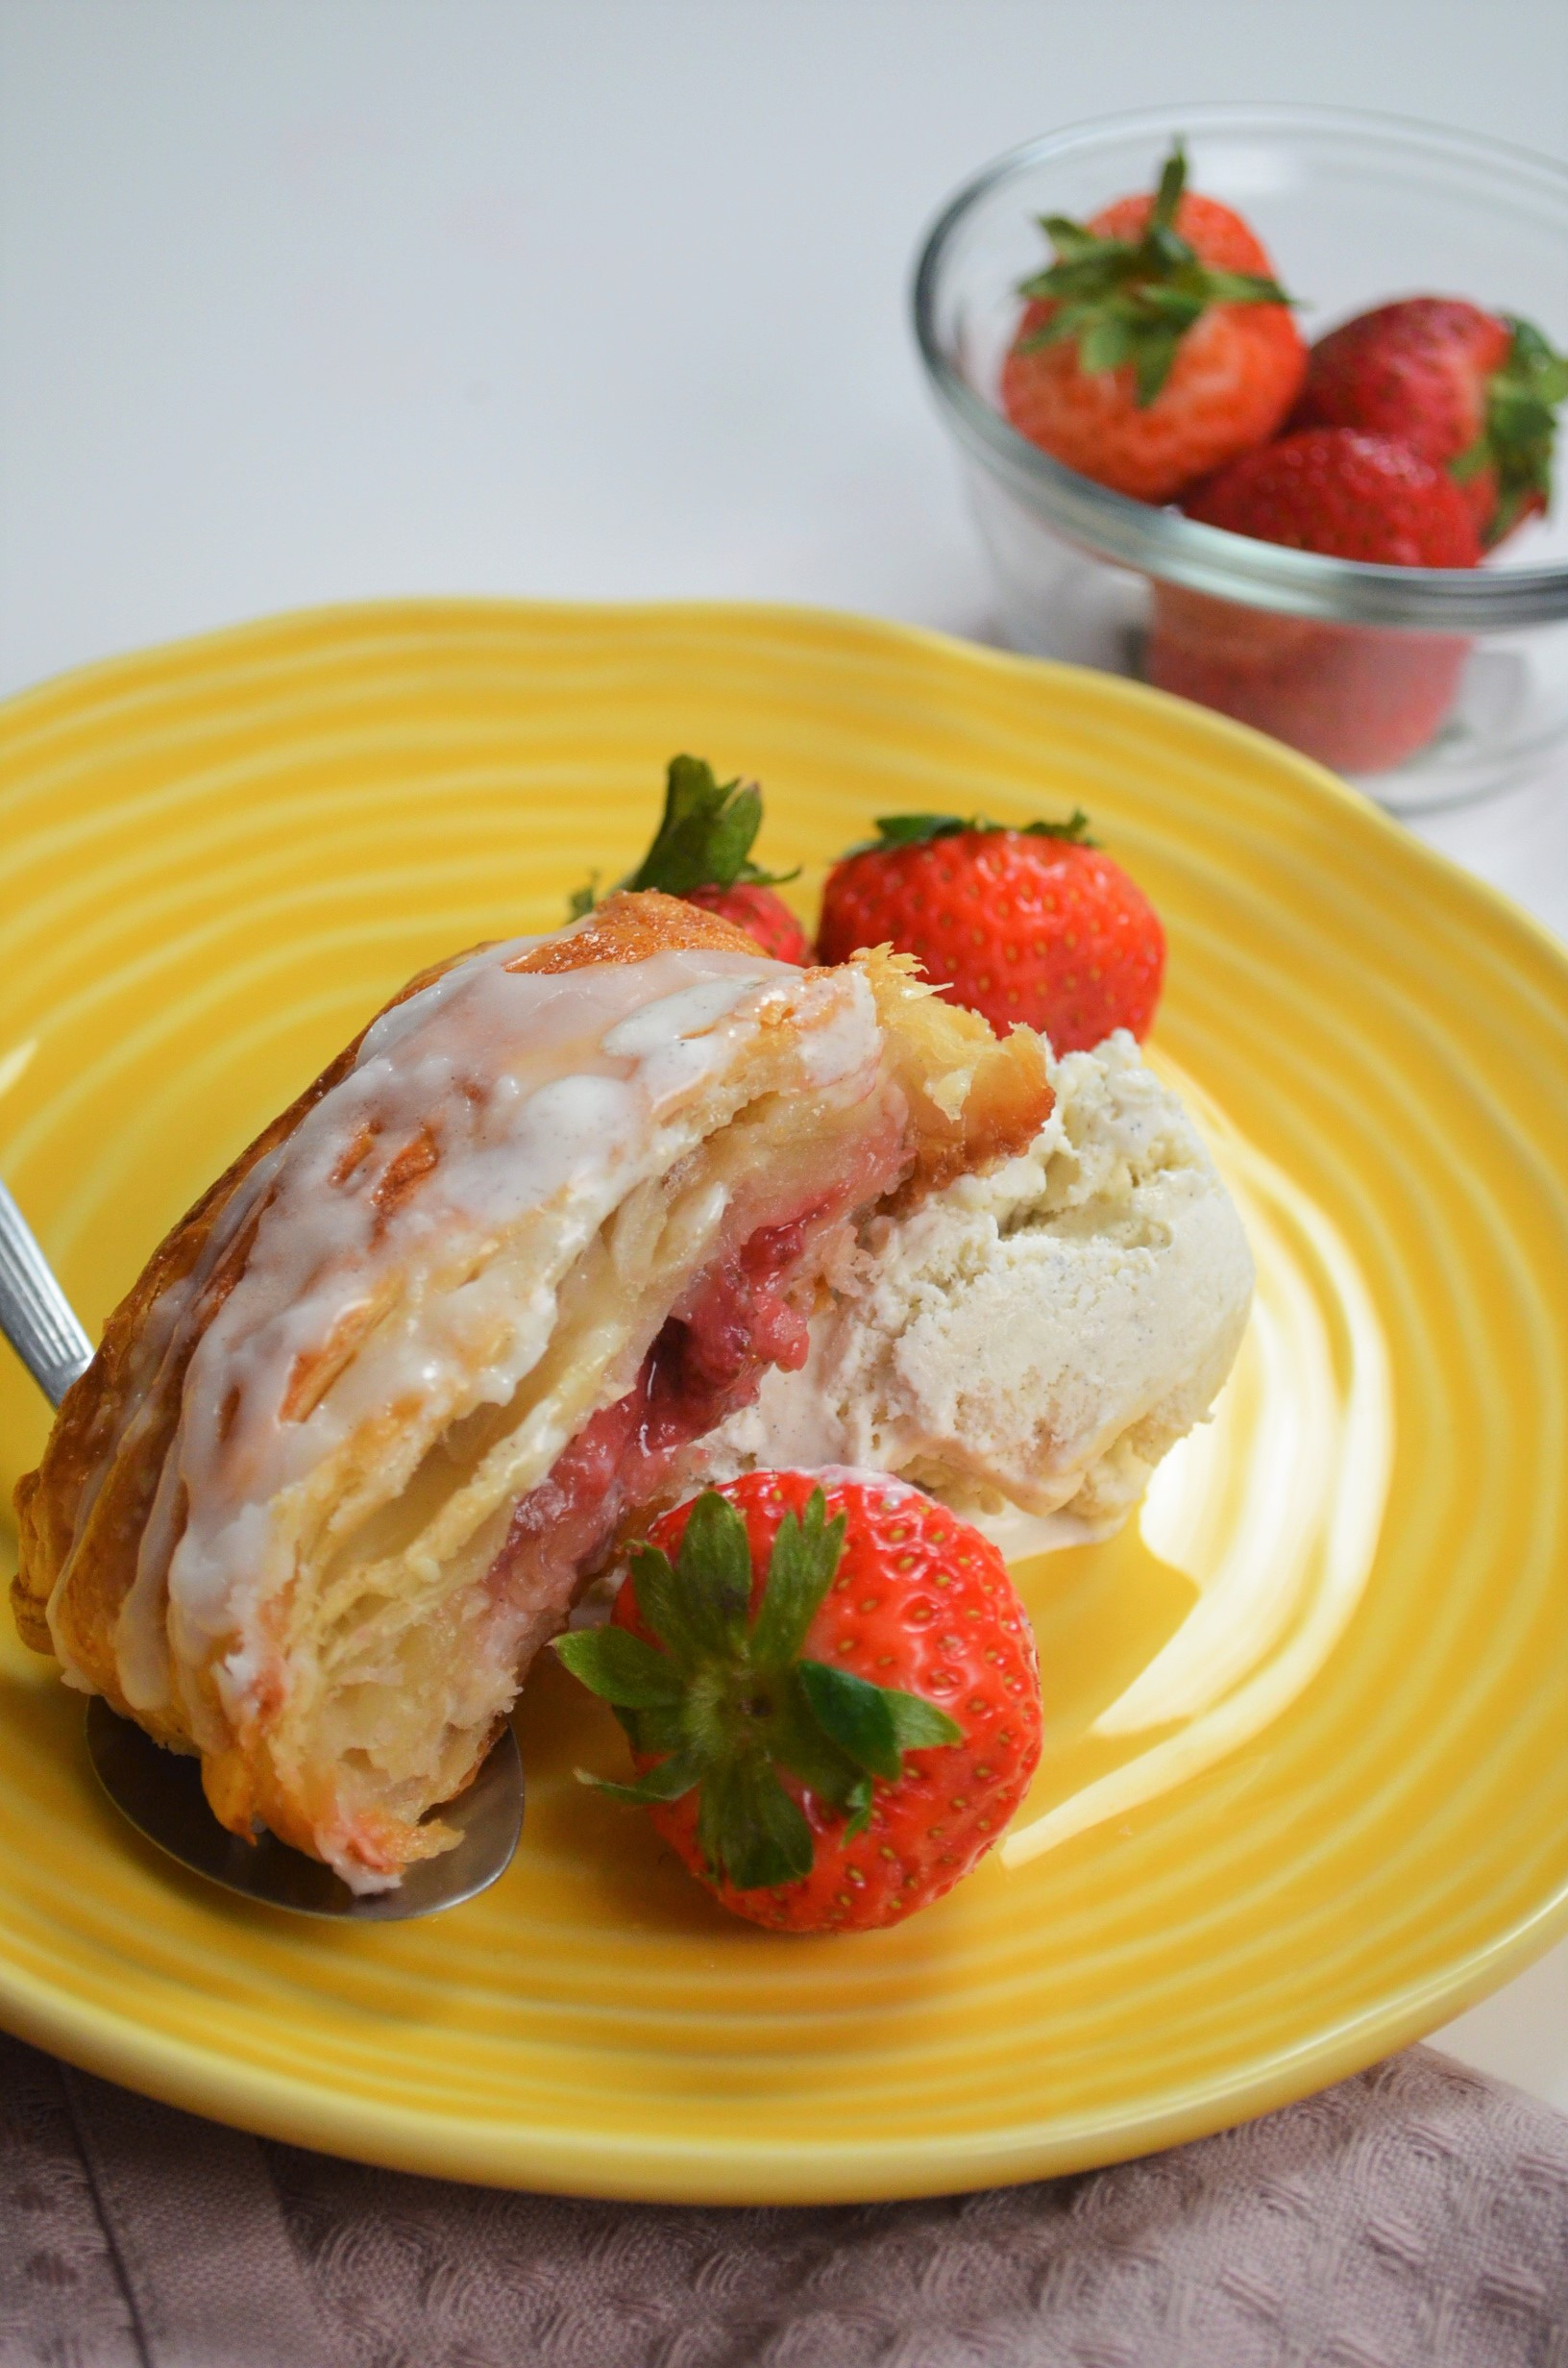 Braided Strawberry Puff Pastry By SweetNSpicyLiving